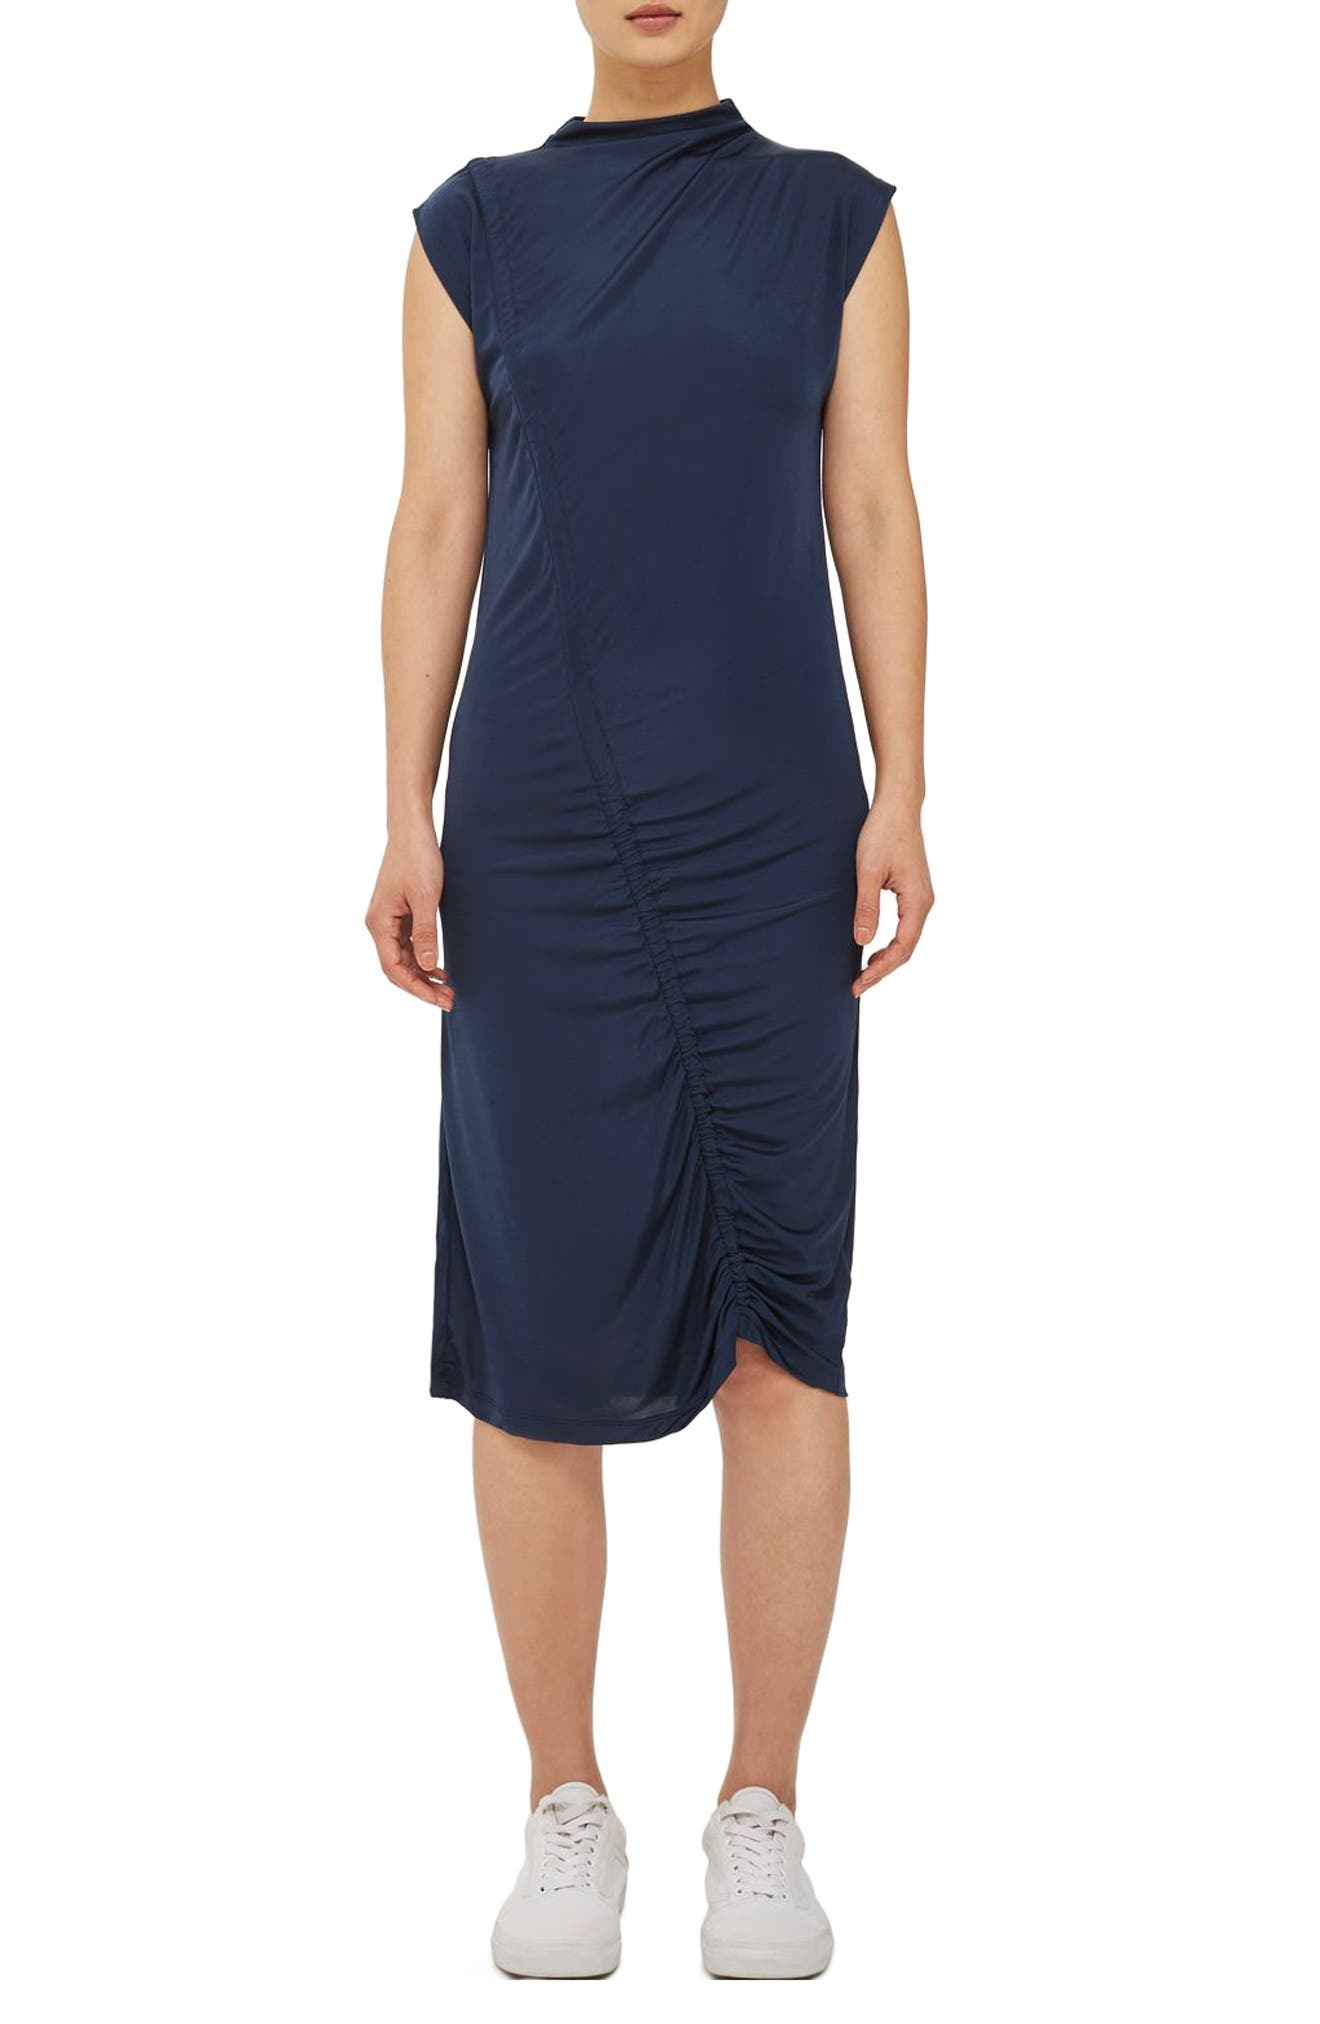 Topshop Boutique Ruched Dress